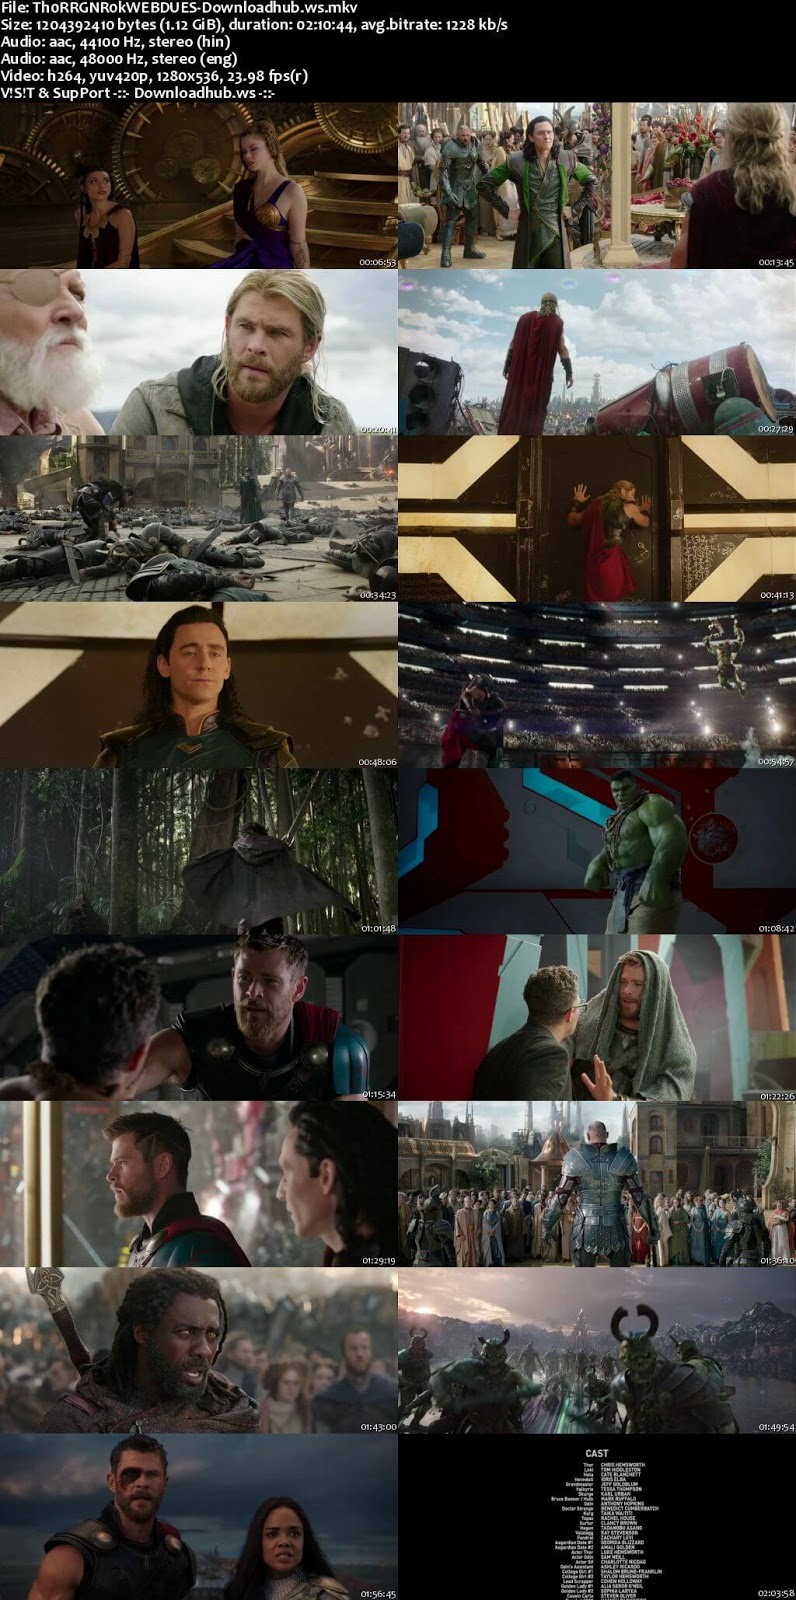 Thor Ragnarok 2017 Hindi Dual Audio 720p Web-DL Download